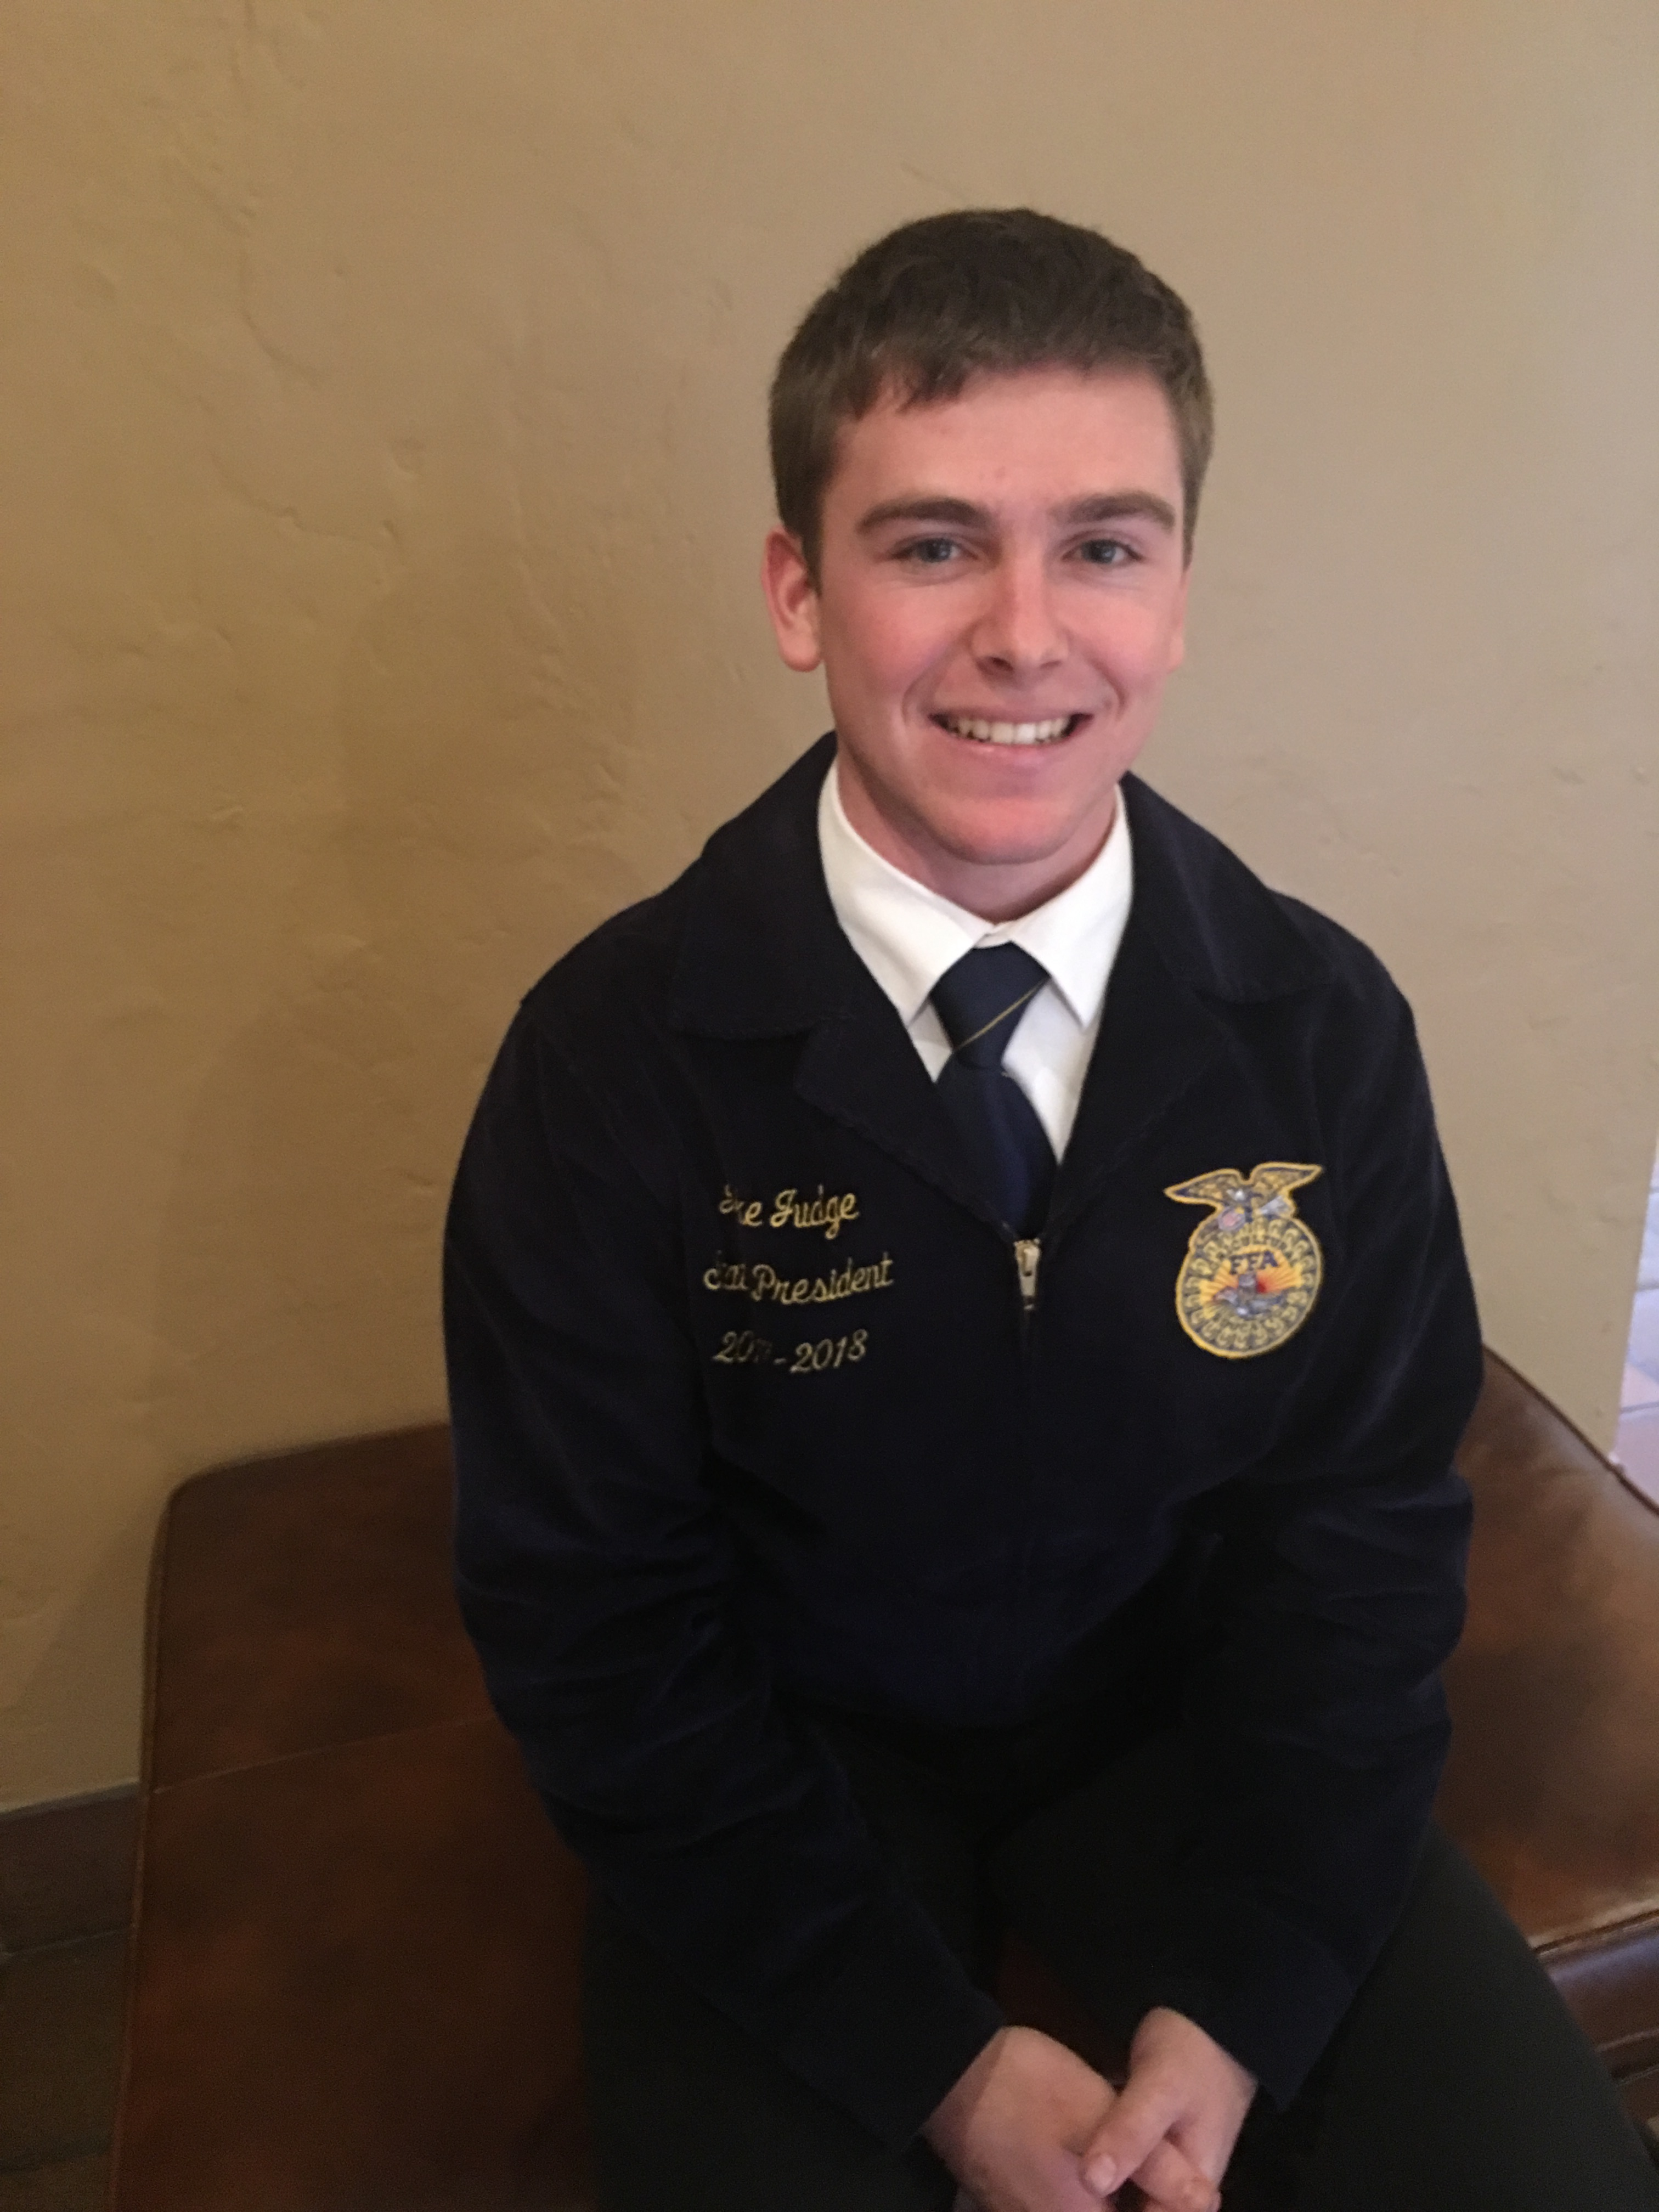 Meet Your 2017-18 State Officer: Jake Judge